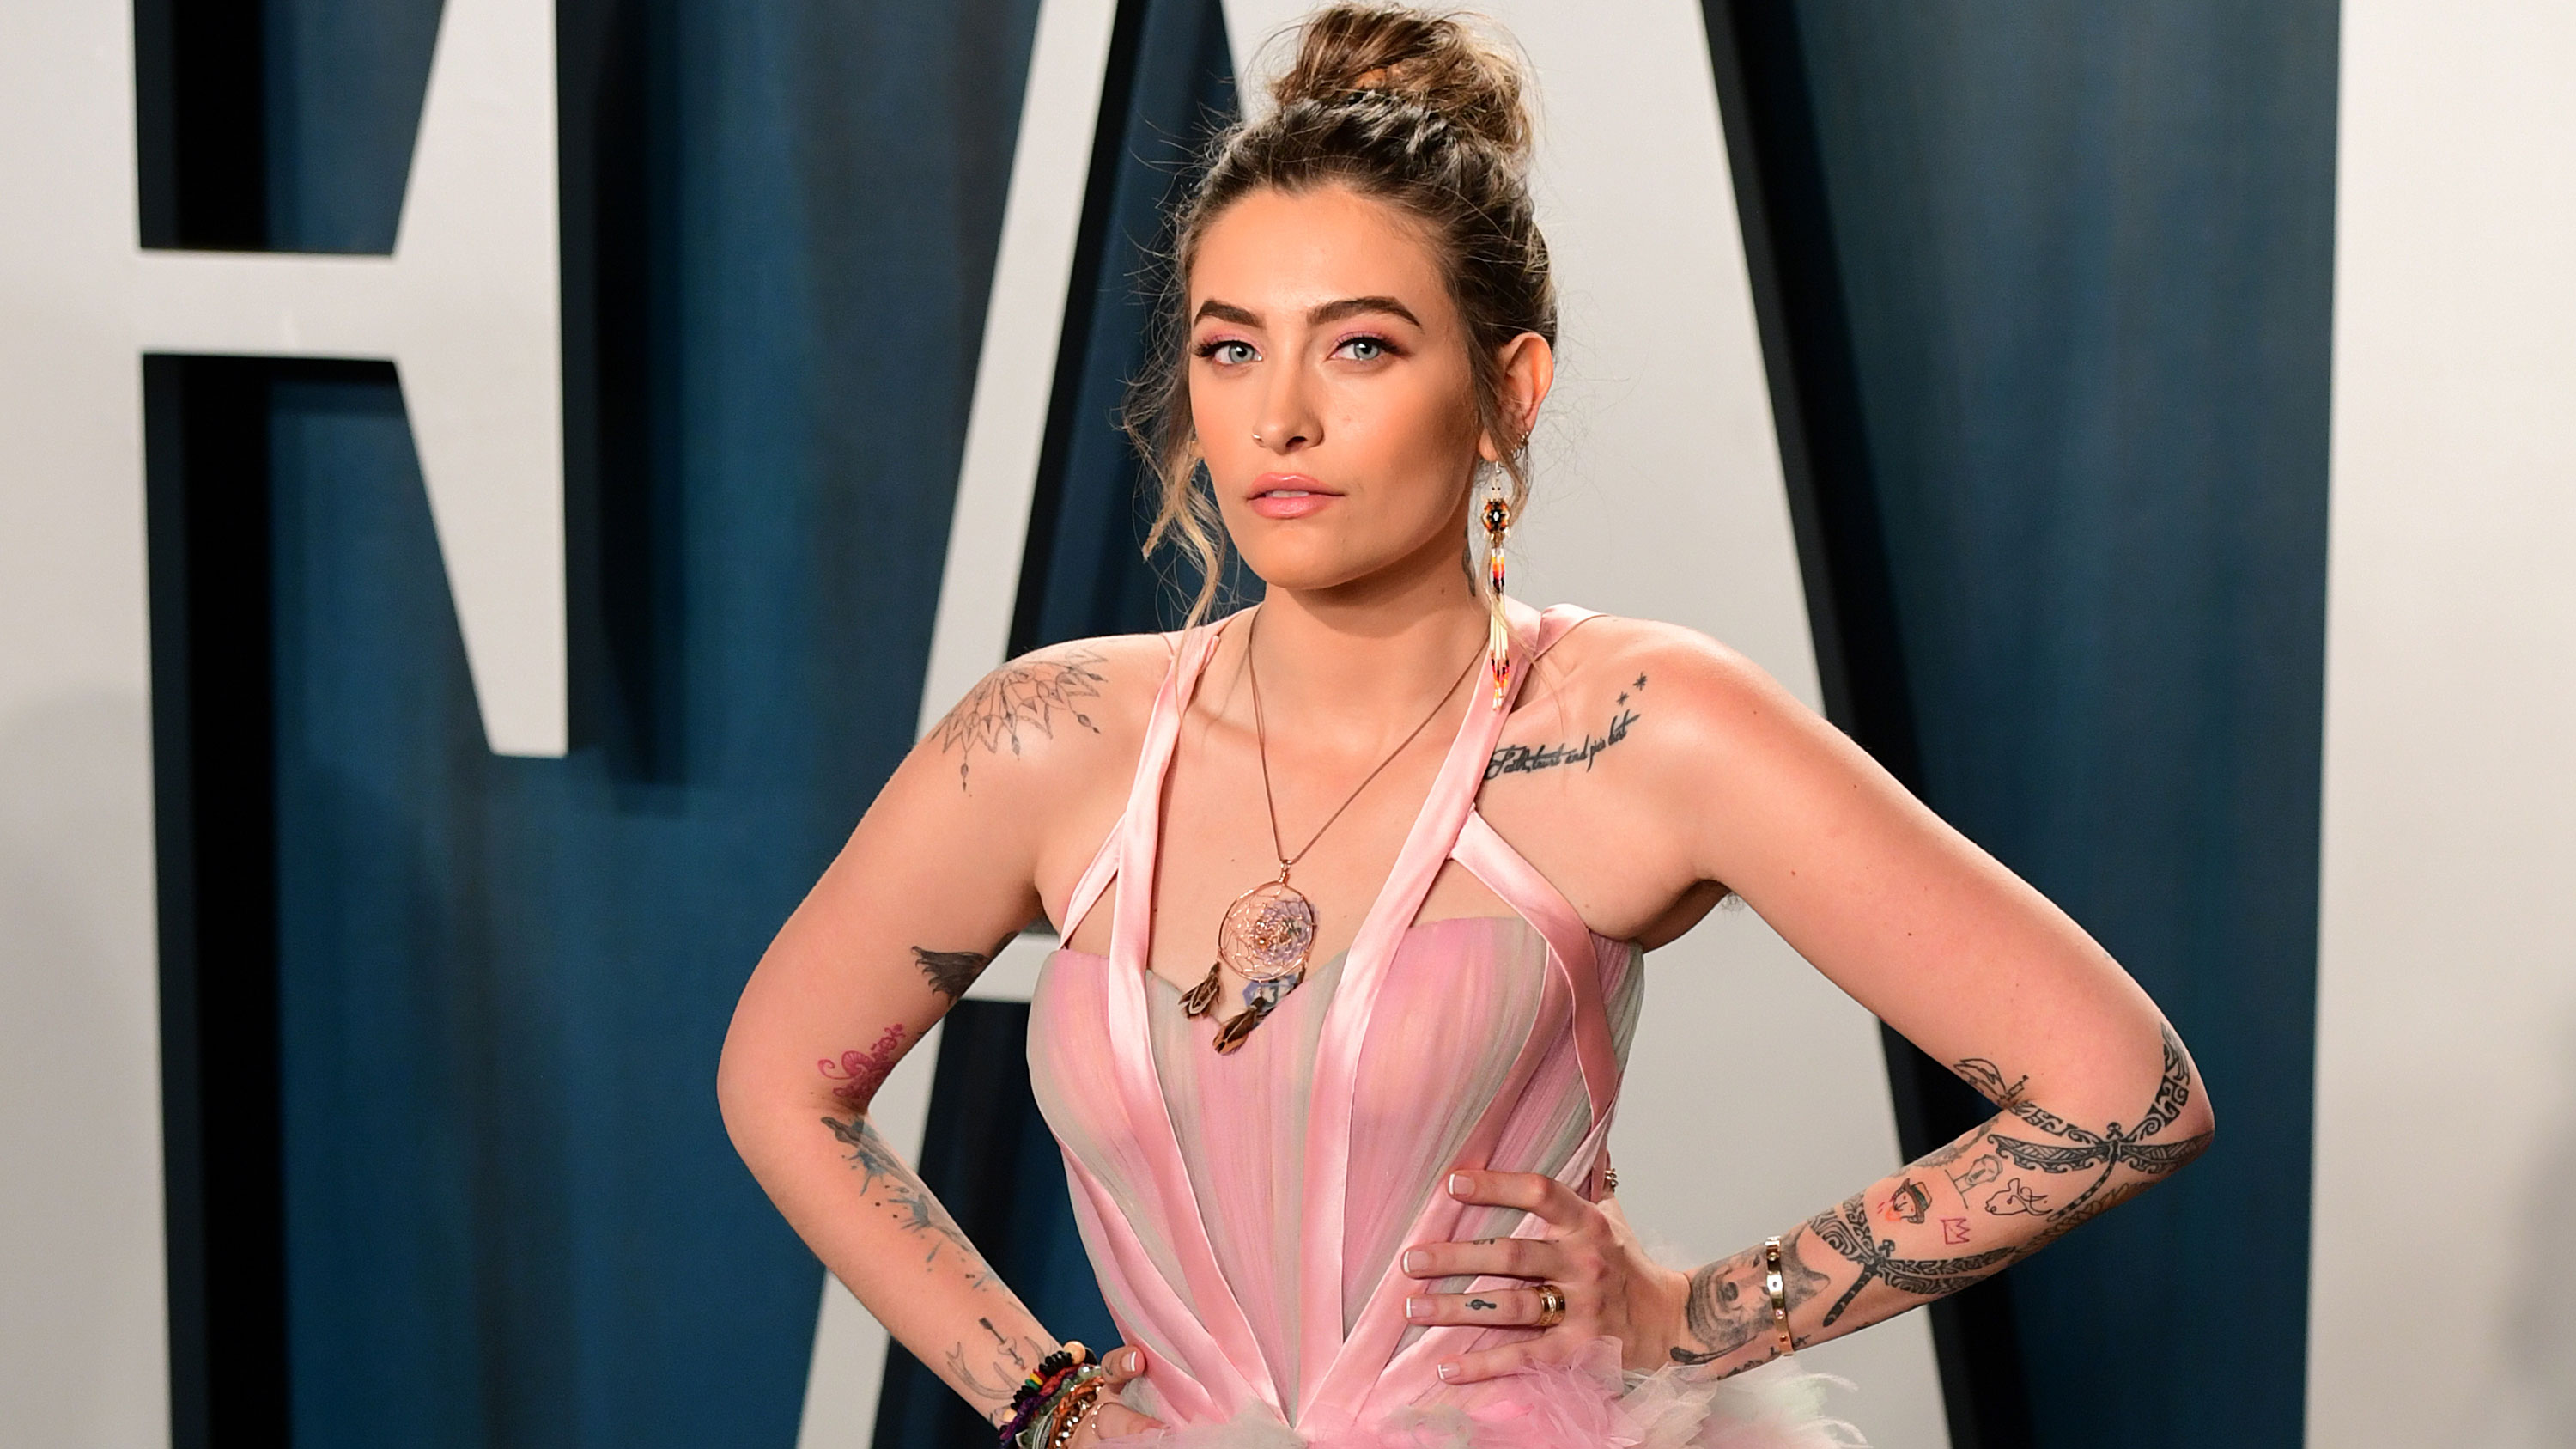 Paris Jackson debuts 'Let Down' and signs record deal